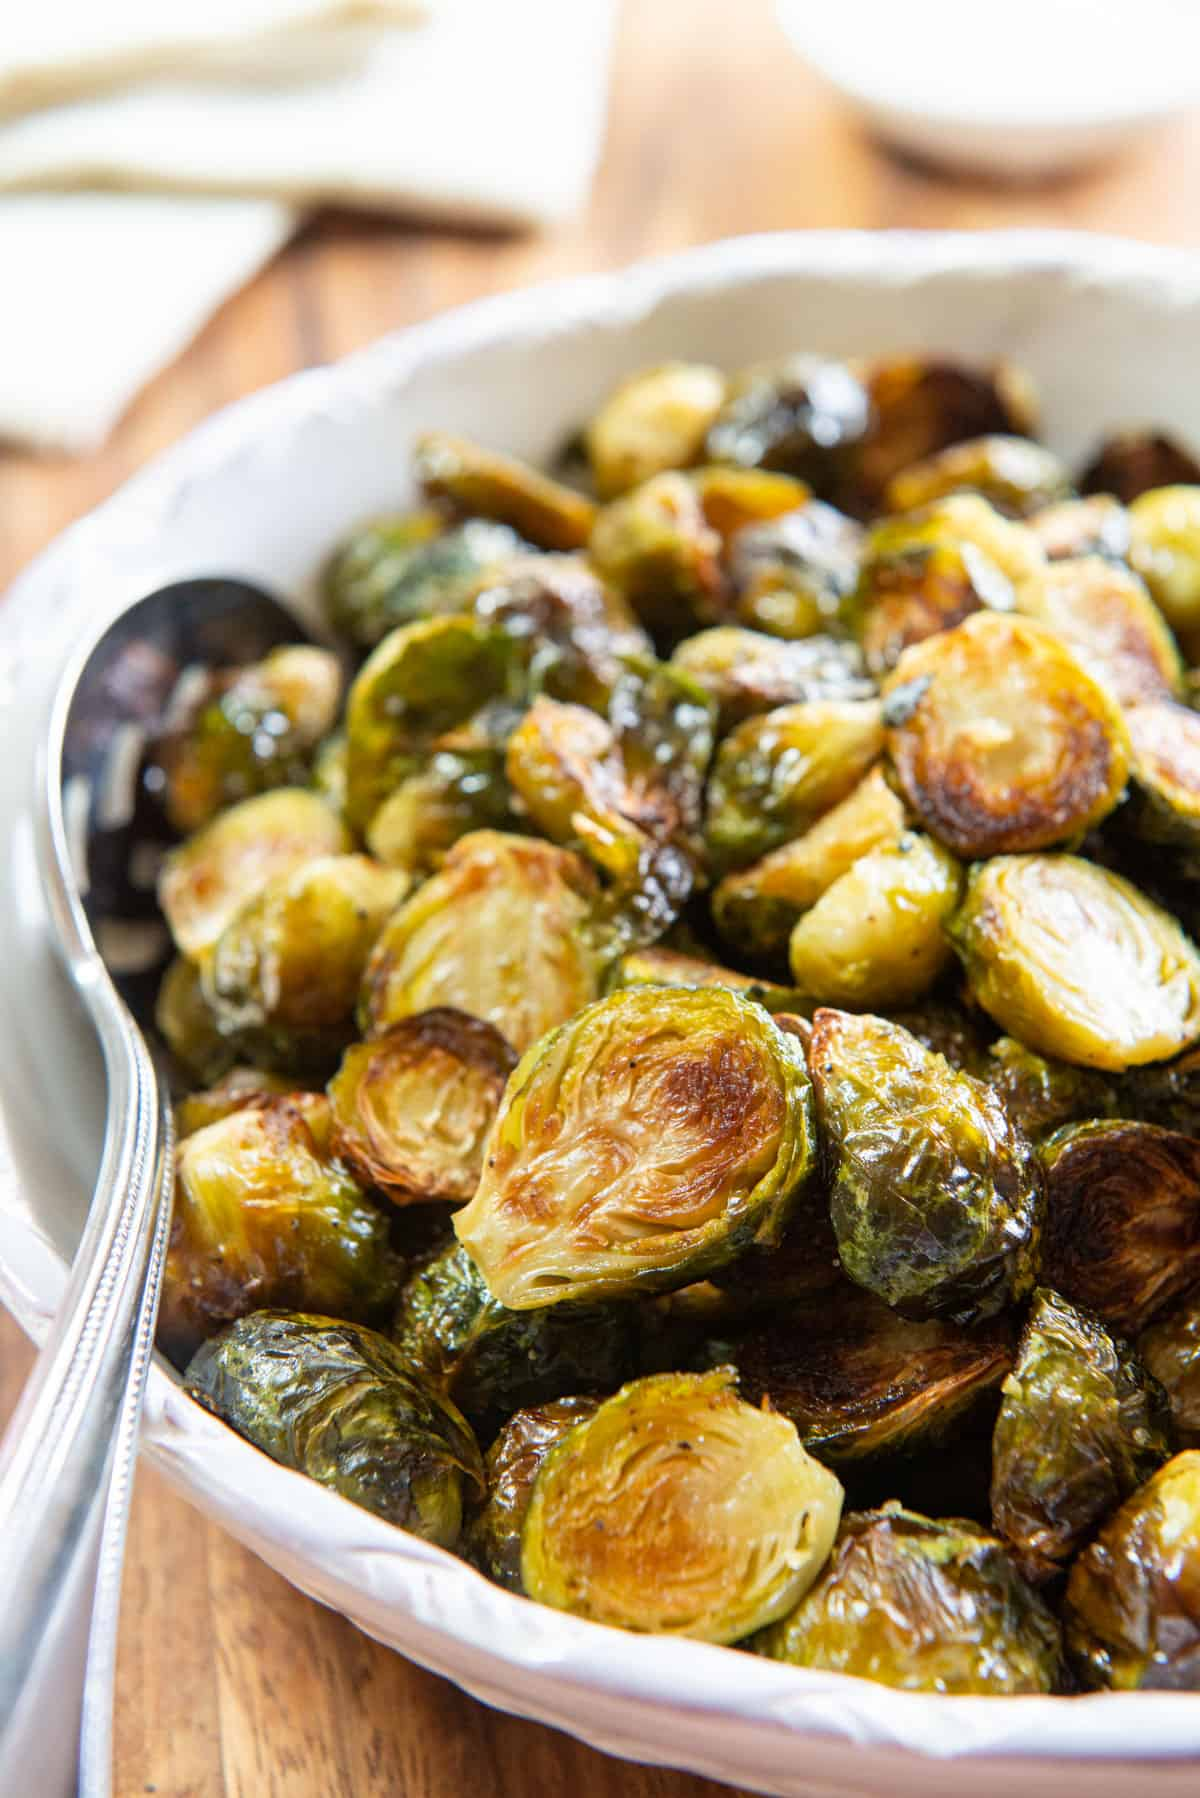 Roasted Brussel Sprouts In a White Bowl with Spoon